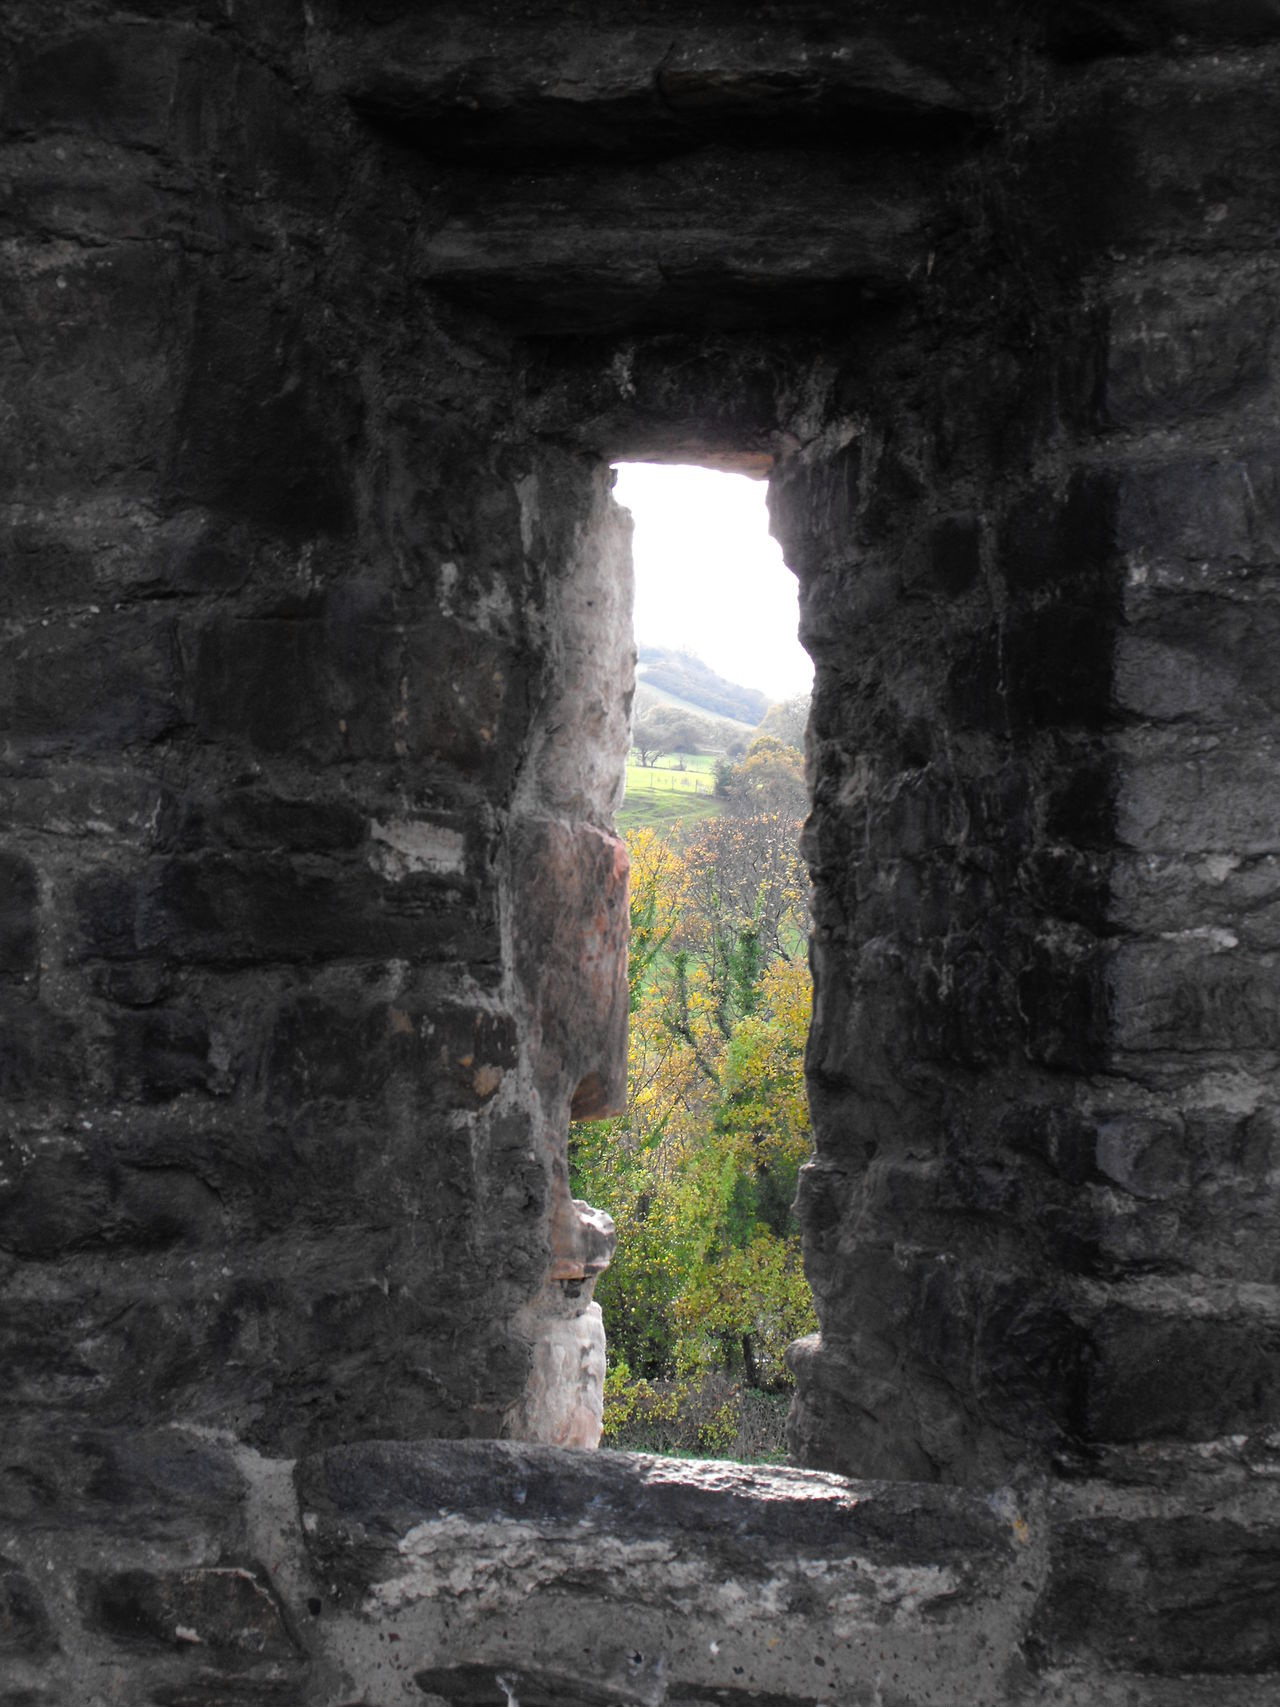 a view from a castle tower Ancient Ancient Civilization Architecture Autumn Battlements Britain British Built Structure Castle Day Europe European  Fall History Hole Holiday Indoors  Medieval Nature No People Shooting Tower Vista Window бойница